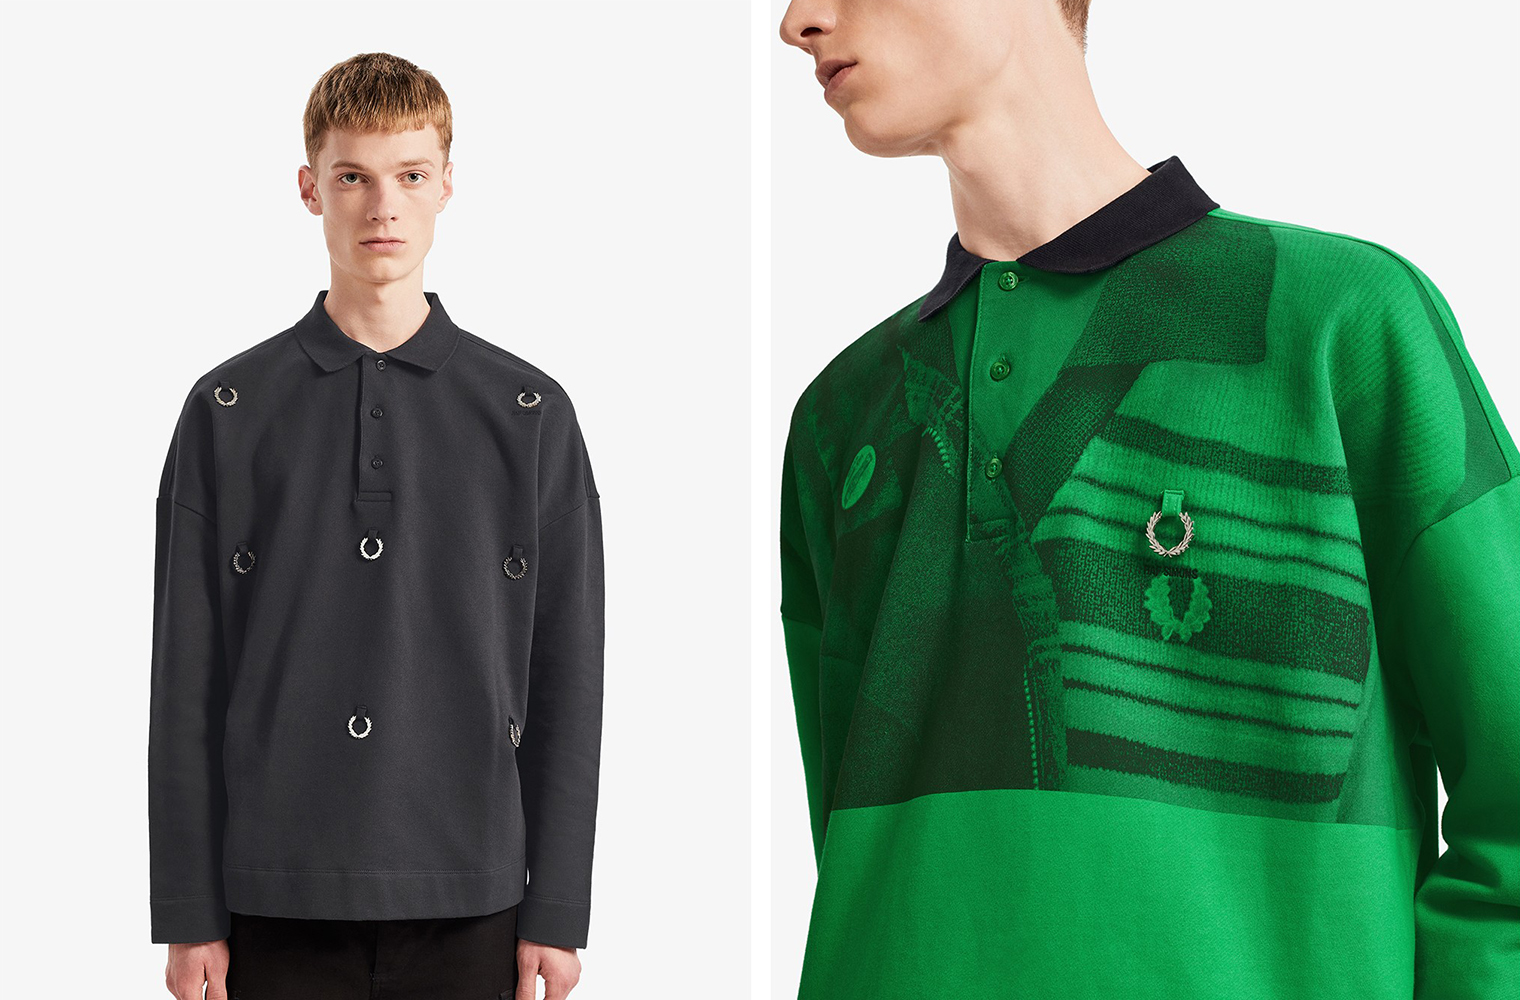 Raf Simons x Fred Perry Fall/Winter 2019